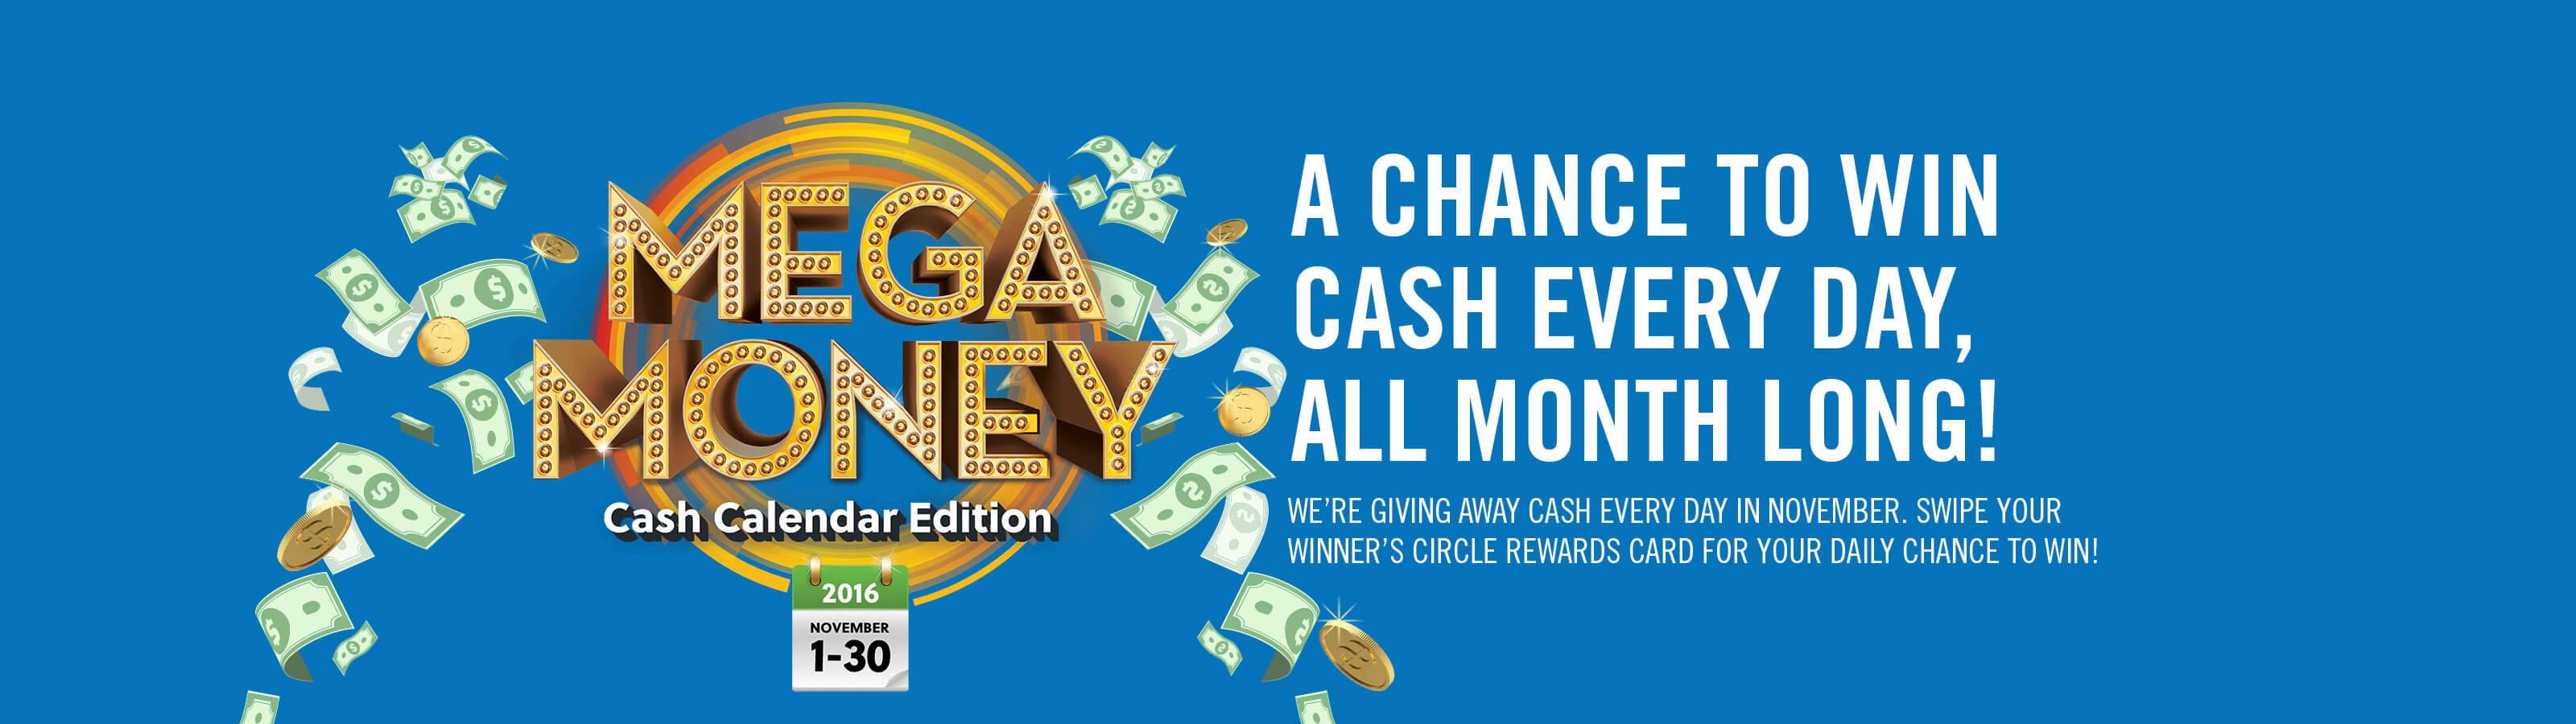 chance to win money